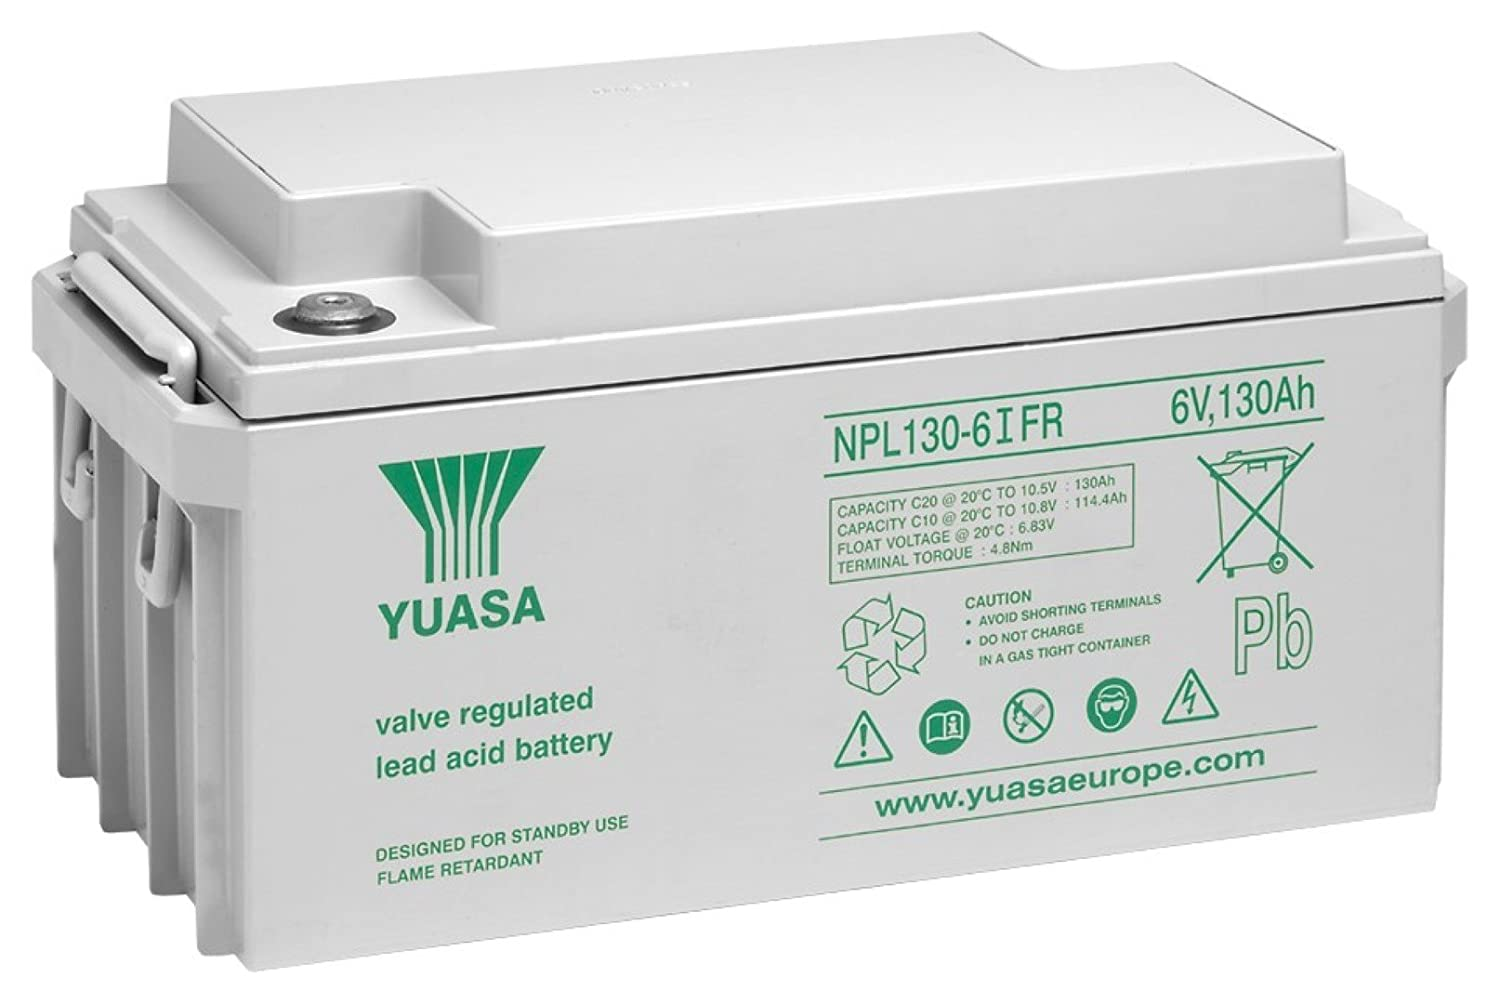 Yuasa Lead Acid Battery Npl 130 6ifr 10 12 Years 6v Amazonco For Power Supply We Can Use Batteries Or Regulated Electronics